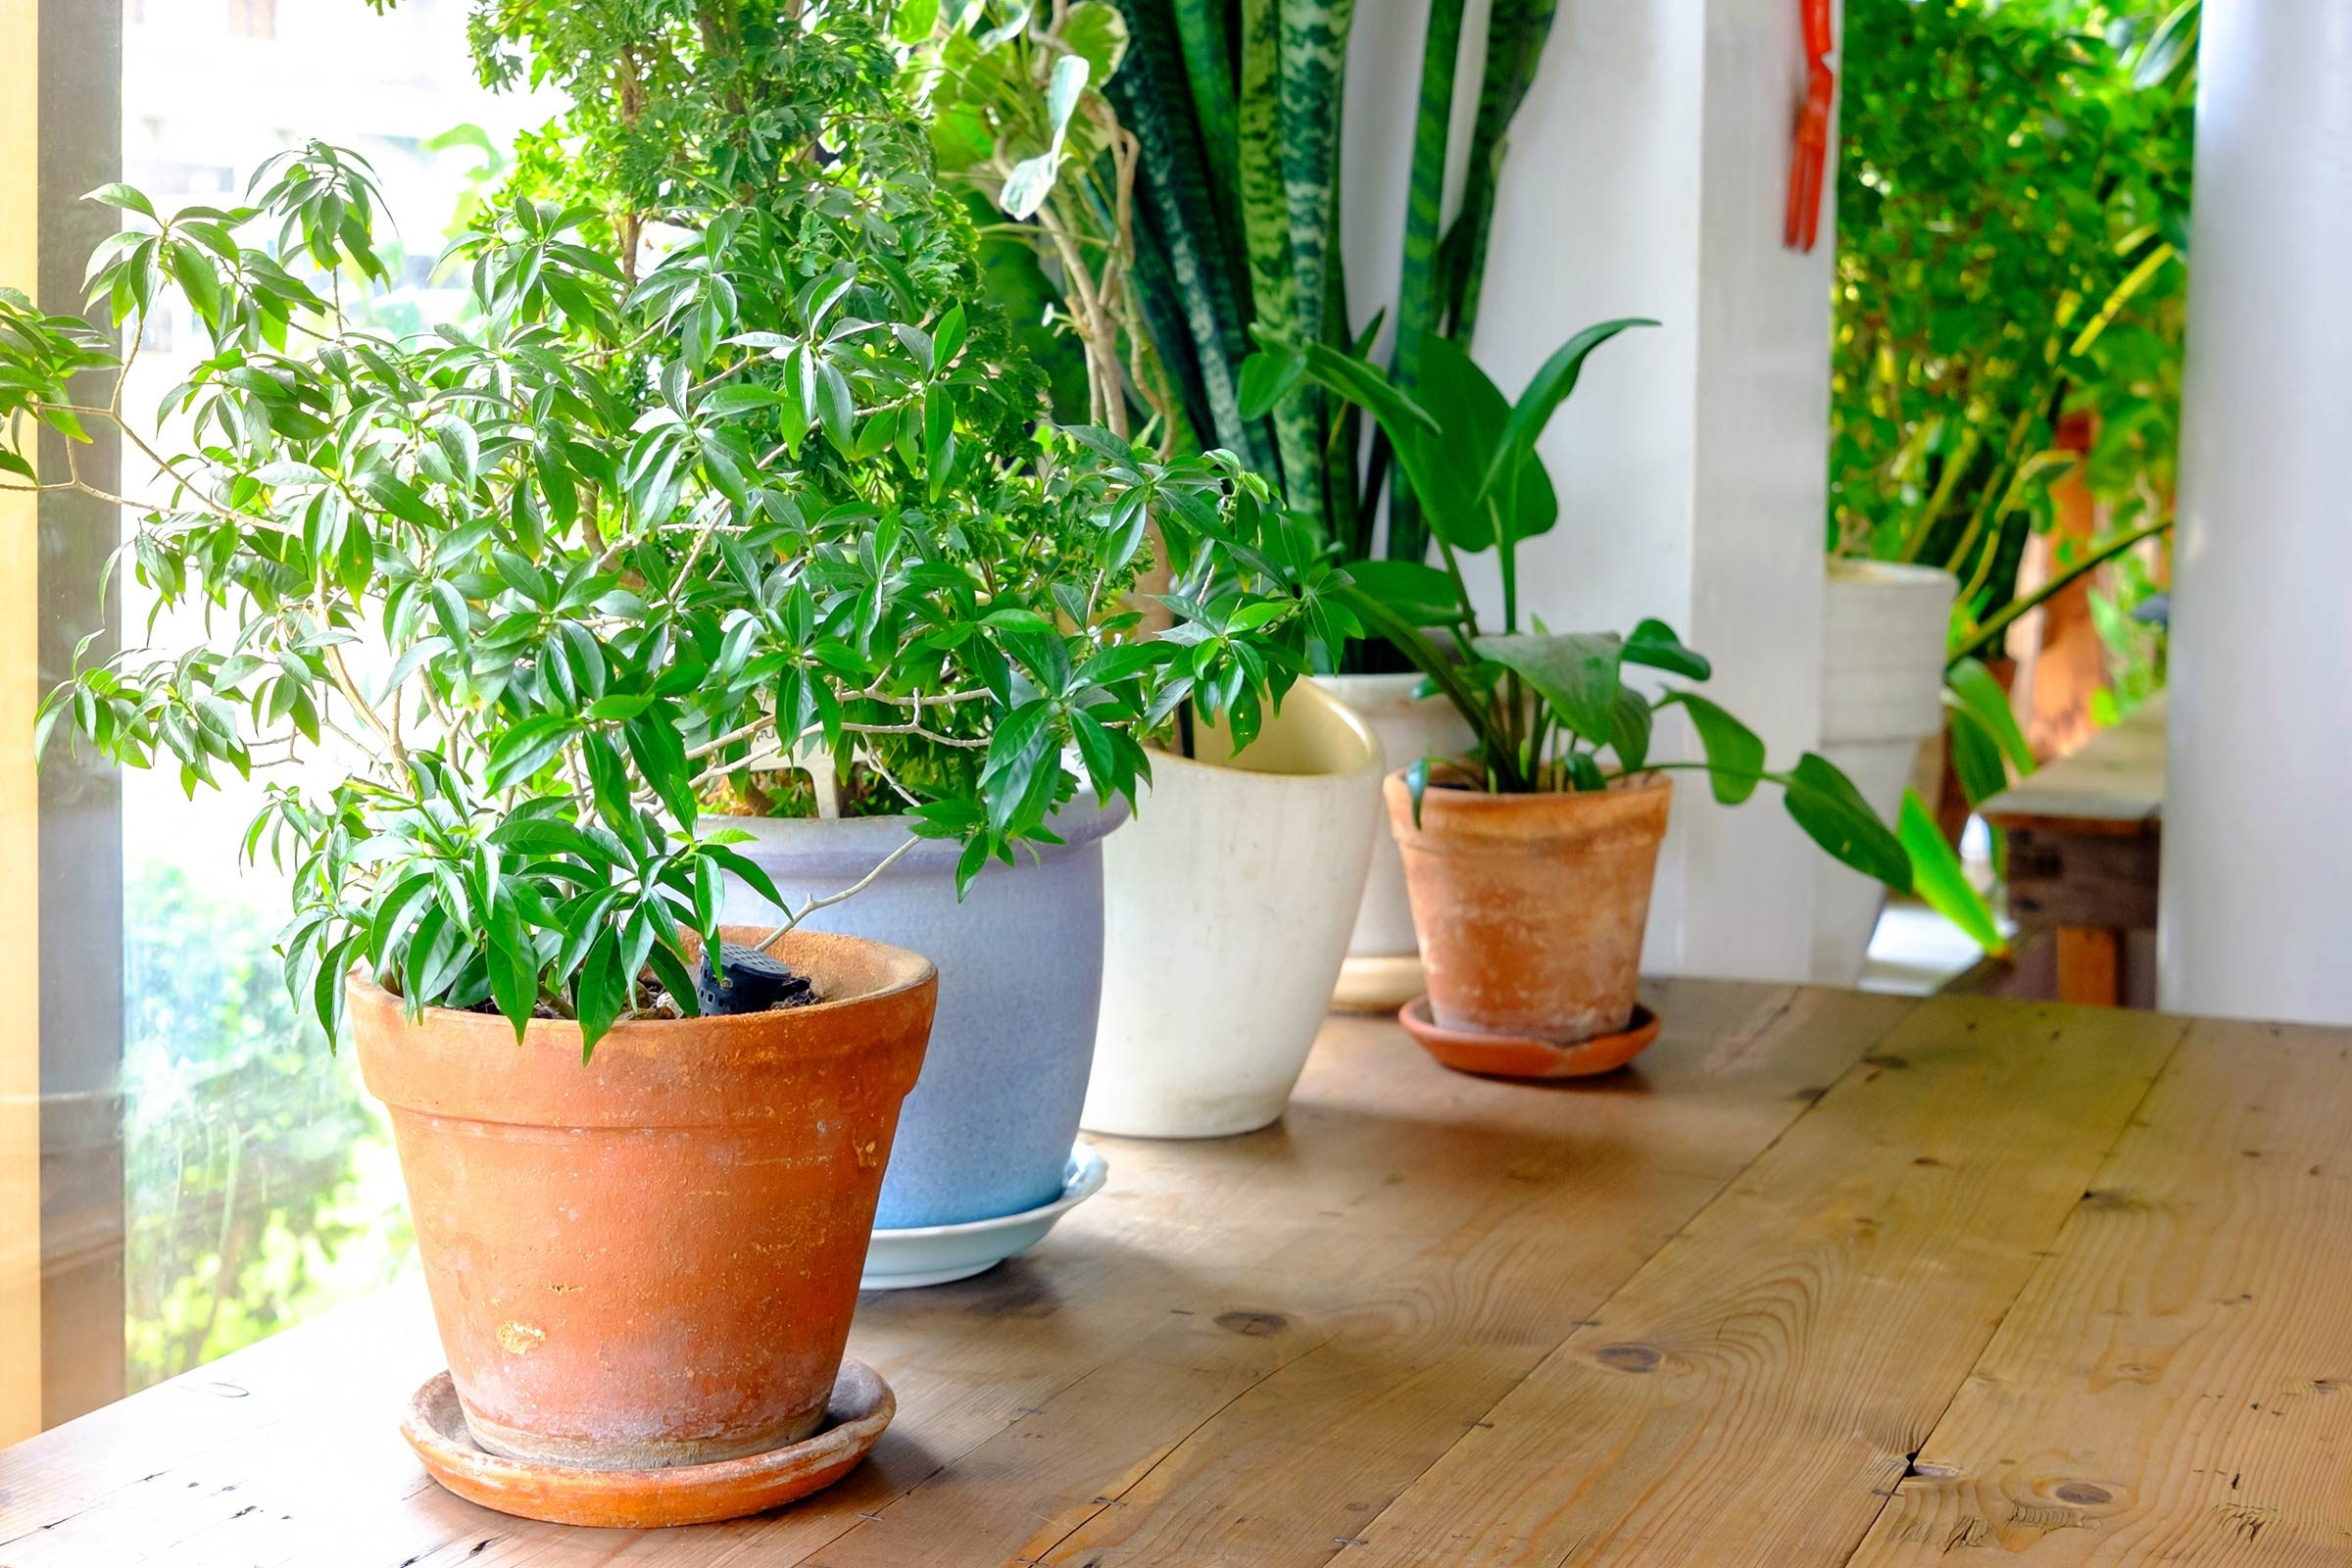 growing plants indoors: 29 tips for houseplants | reader's digest